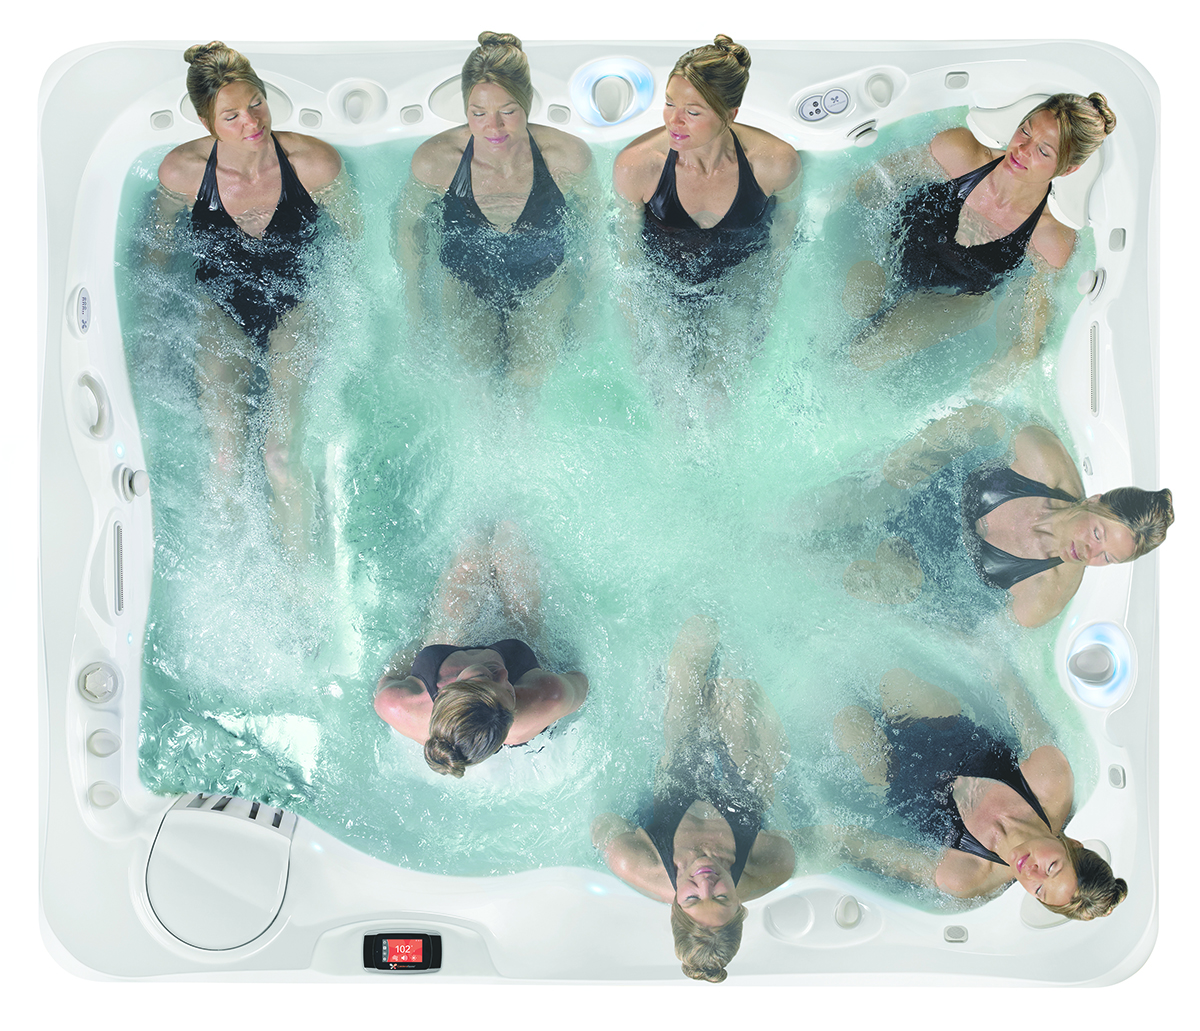 caldera spas hot tub circuit therapy